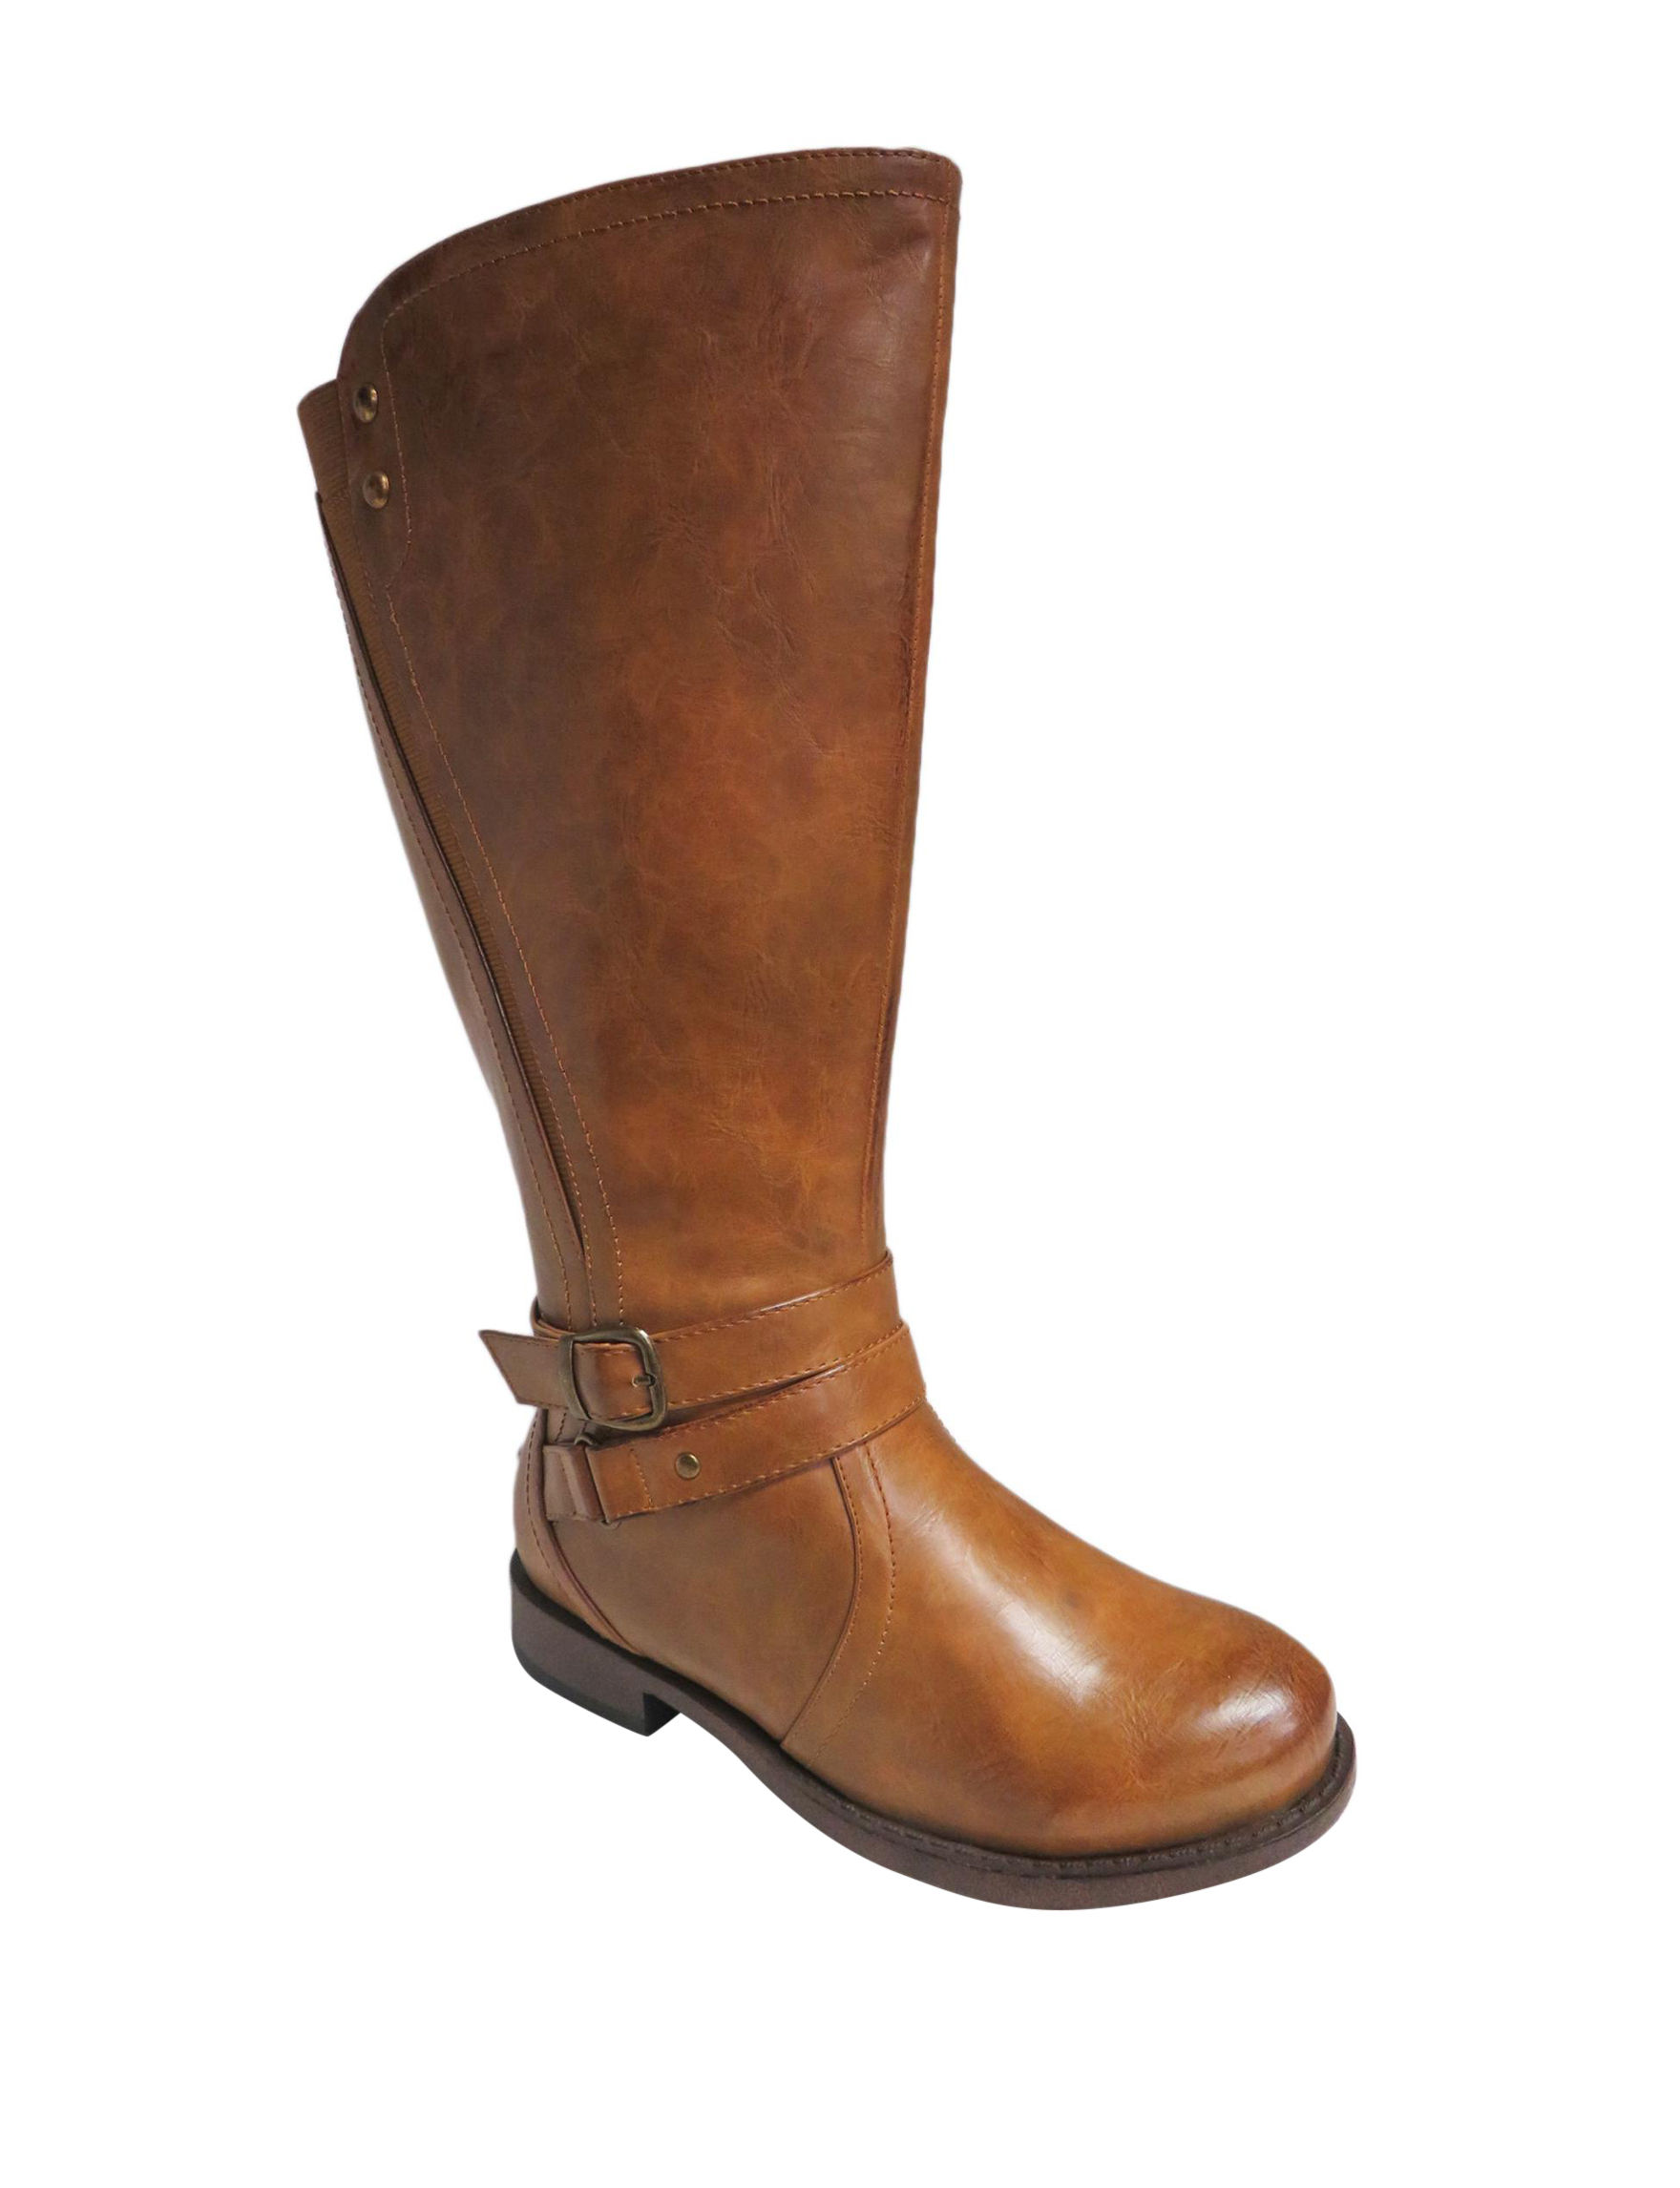 Celebrity Pink Tan Riding Boots Wide Calf